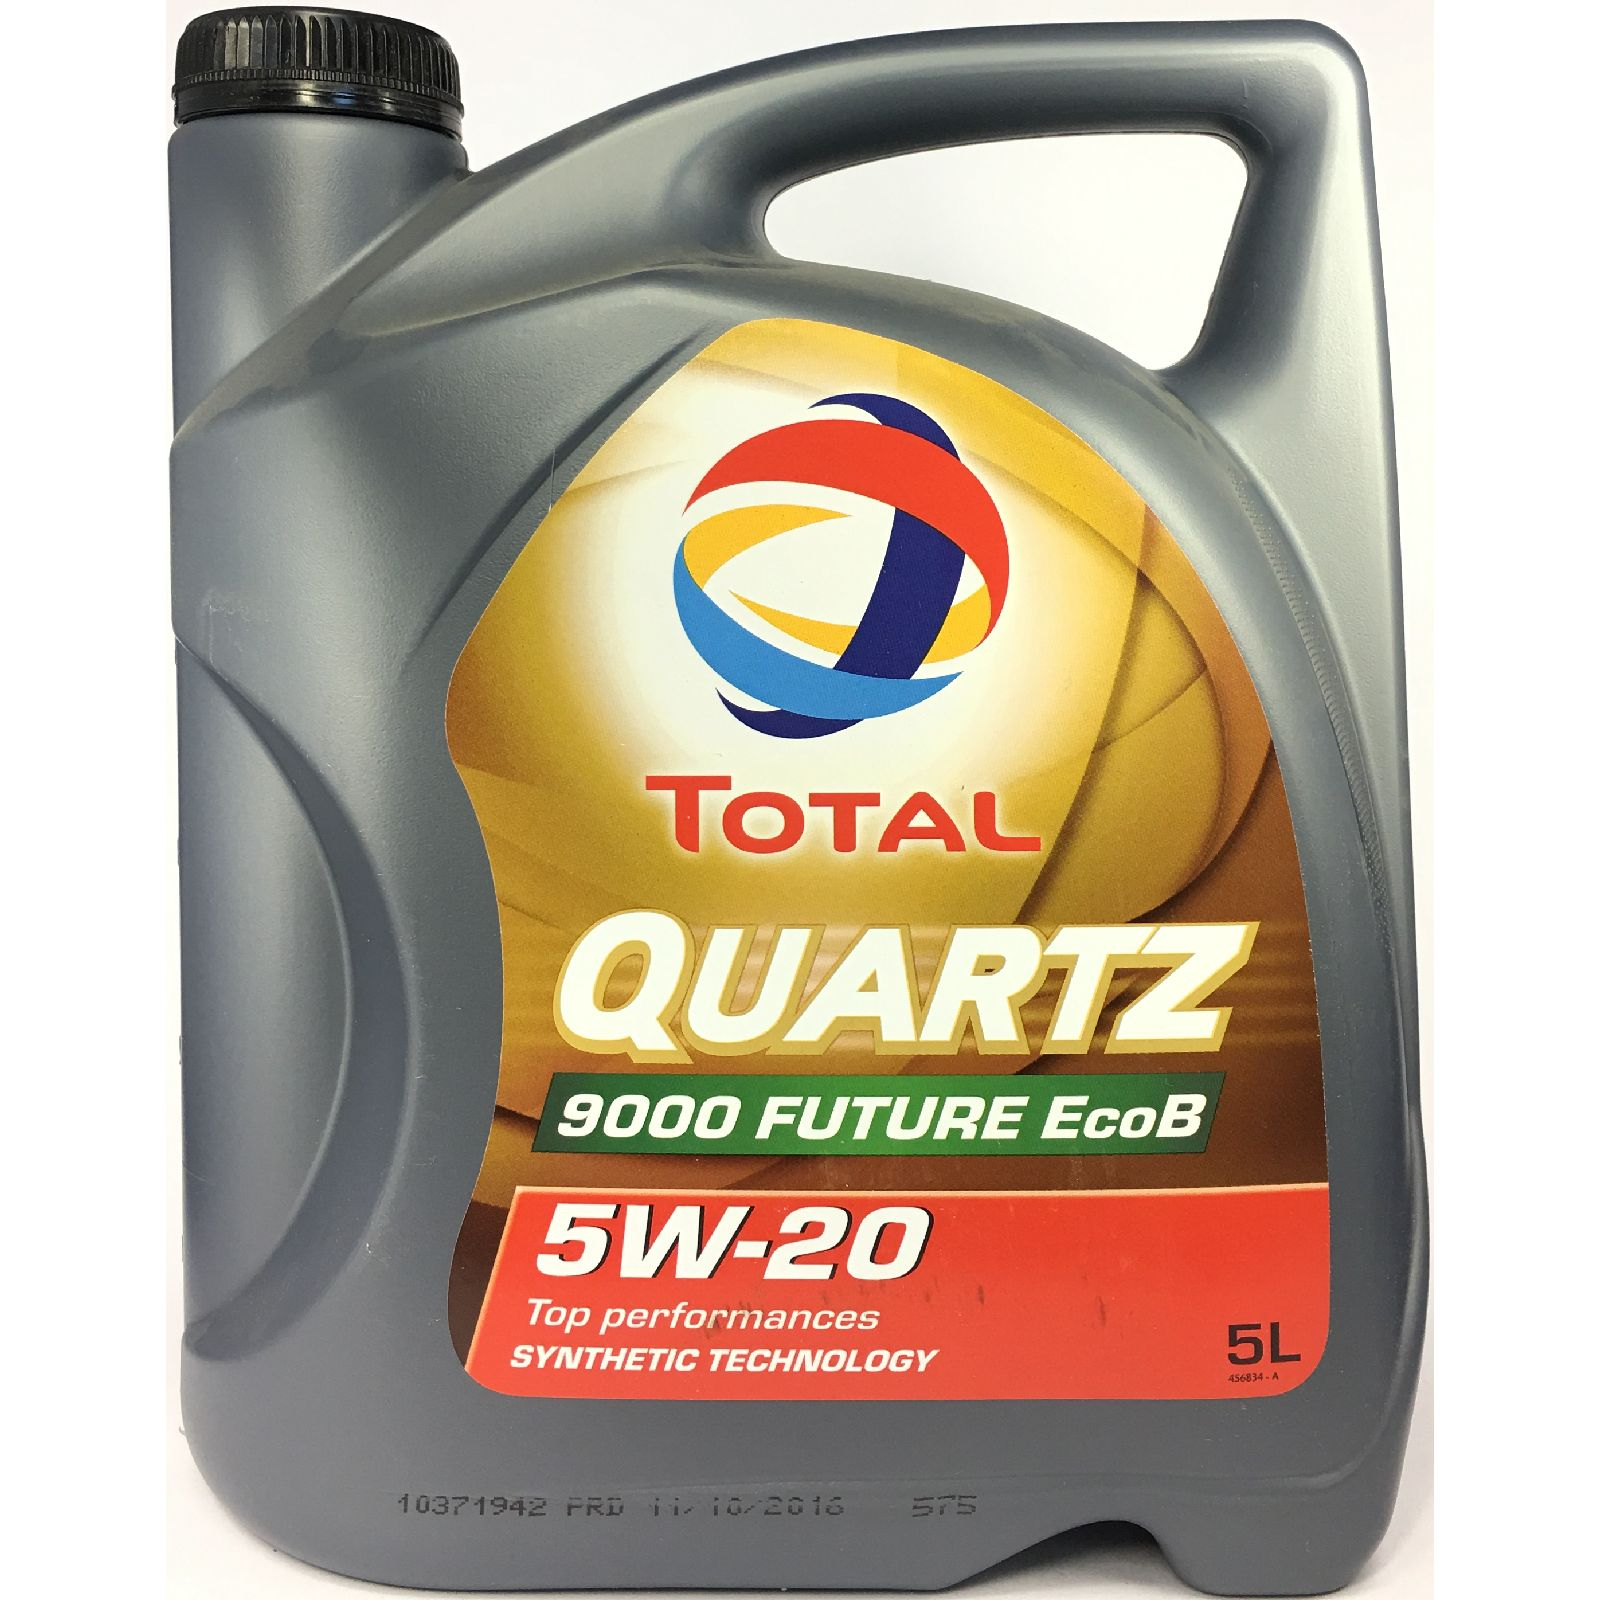 5 Liter TOTAL QUARTZ 9000 FUTURE EcoB 5W-20